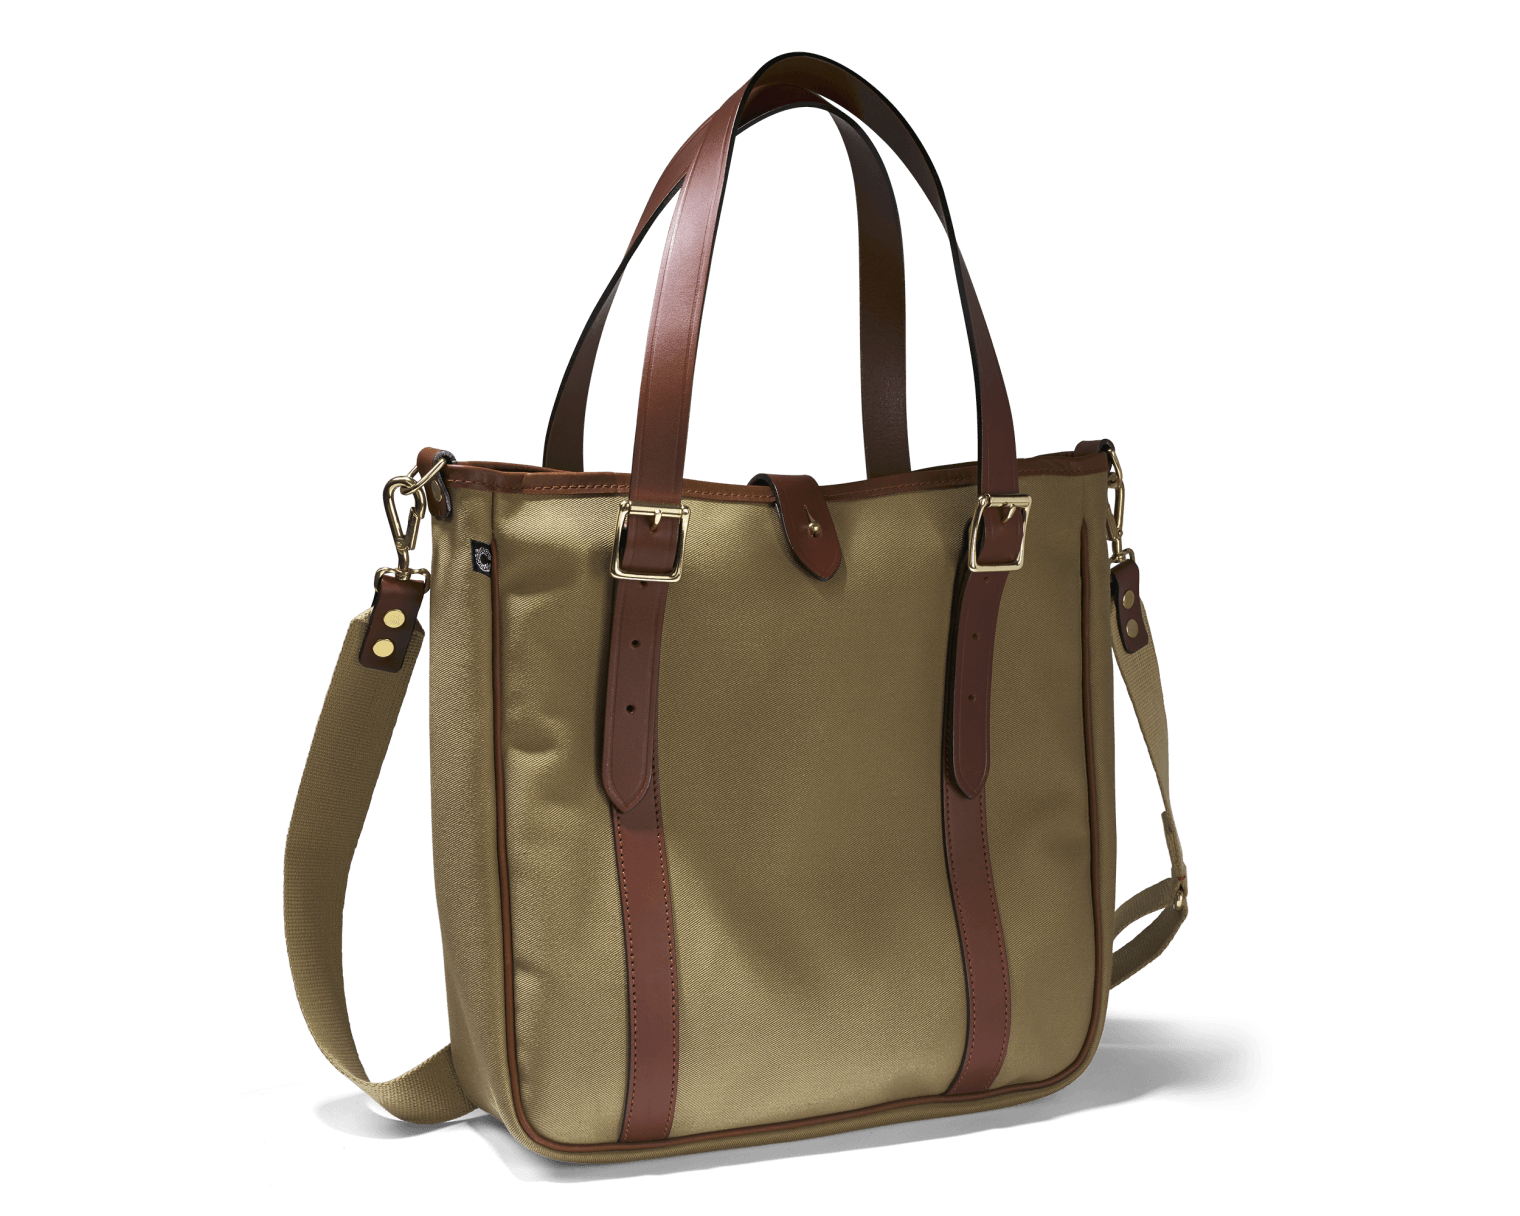 CROOTS Dalby Tote Bag, kanvas, khaki